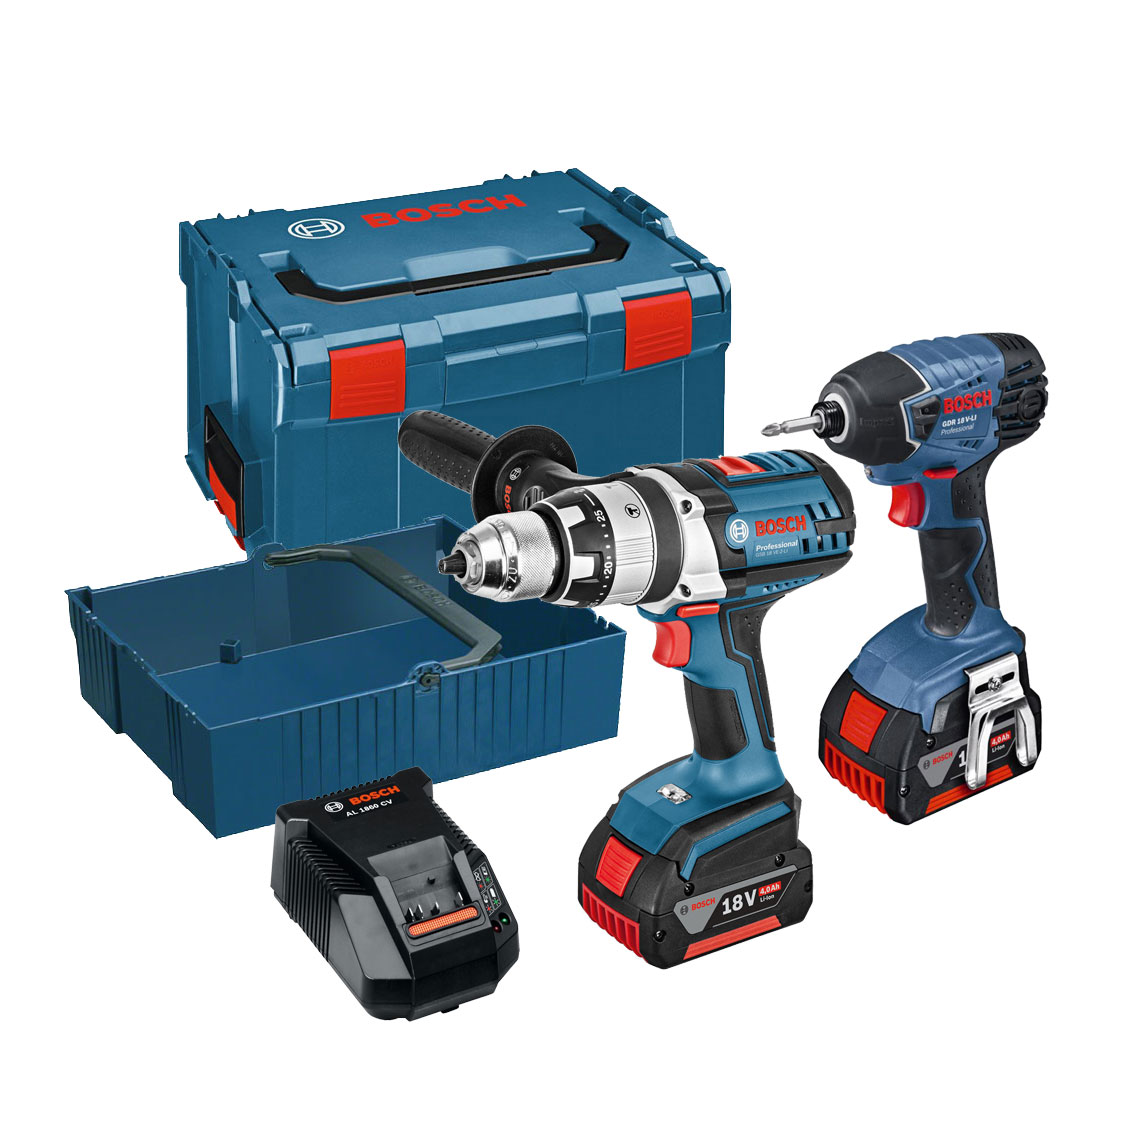 Bosch 18v Combi Drill & Impact Driver Twin Kit with 2x 4.0Ah Batteries in L-Boxx Carry Case 0615990G2Y